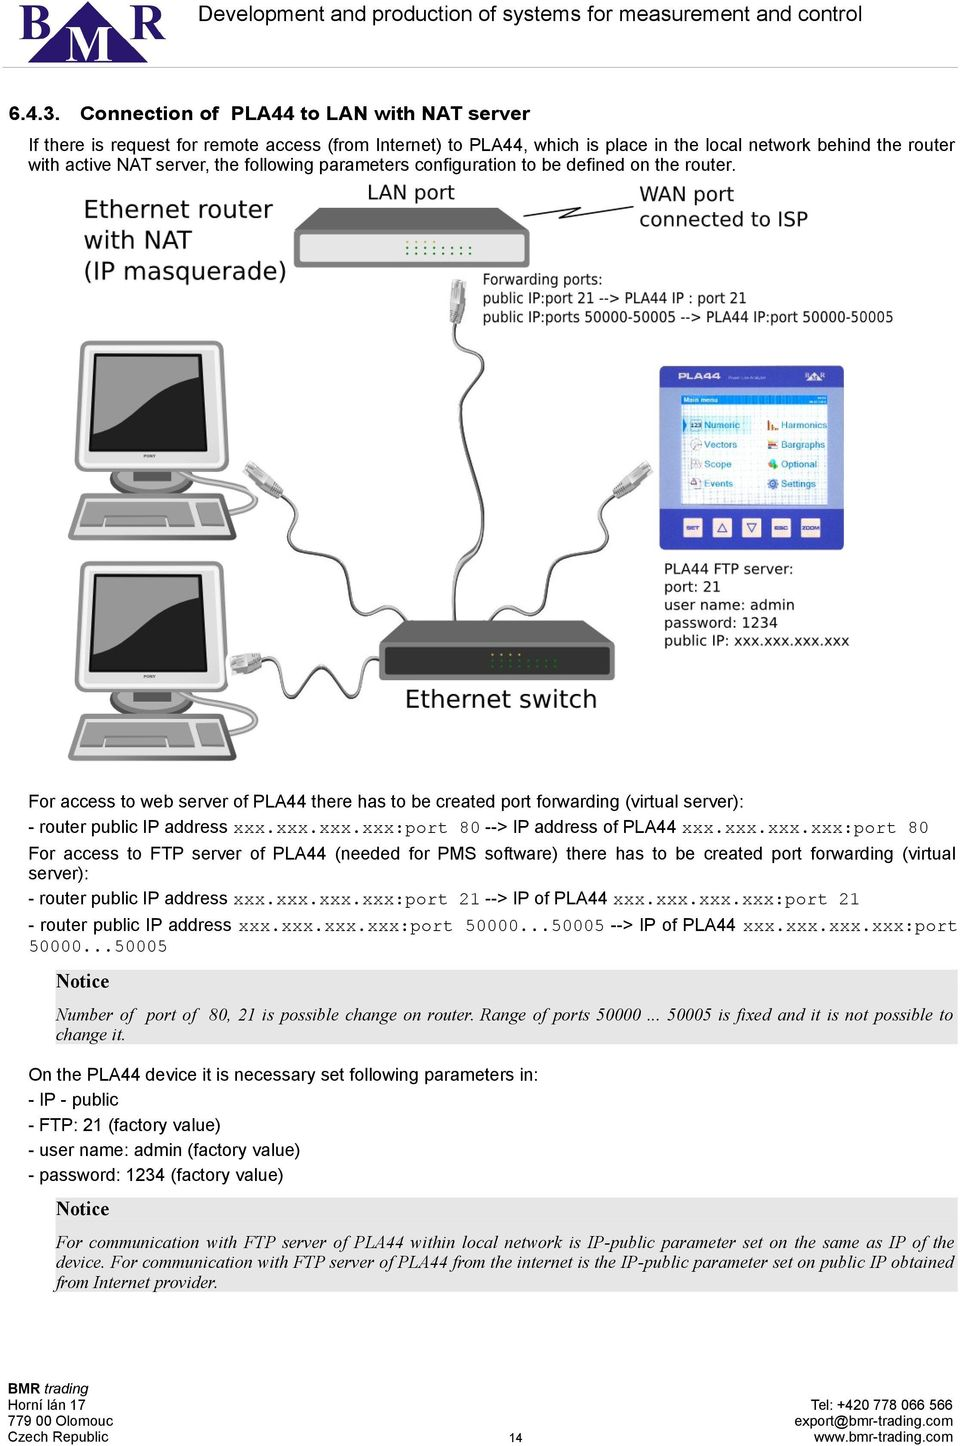 parameters configuration to be defined on the router. For access to web server of PLA44 there has to be created port forwarding (virtual server): - router public IP address xxx.